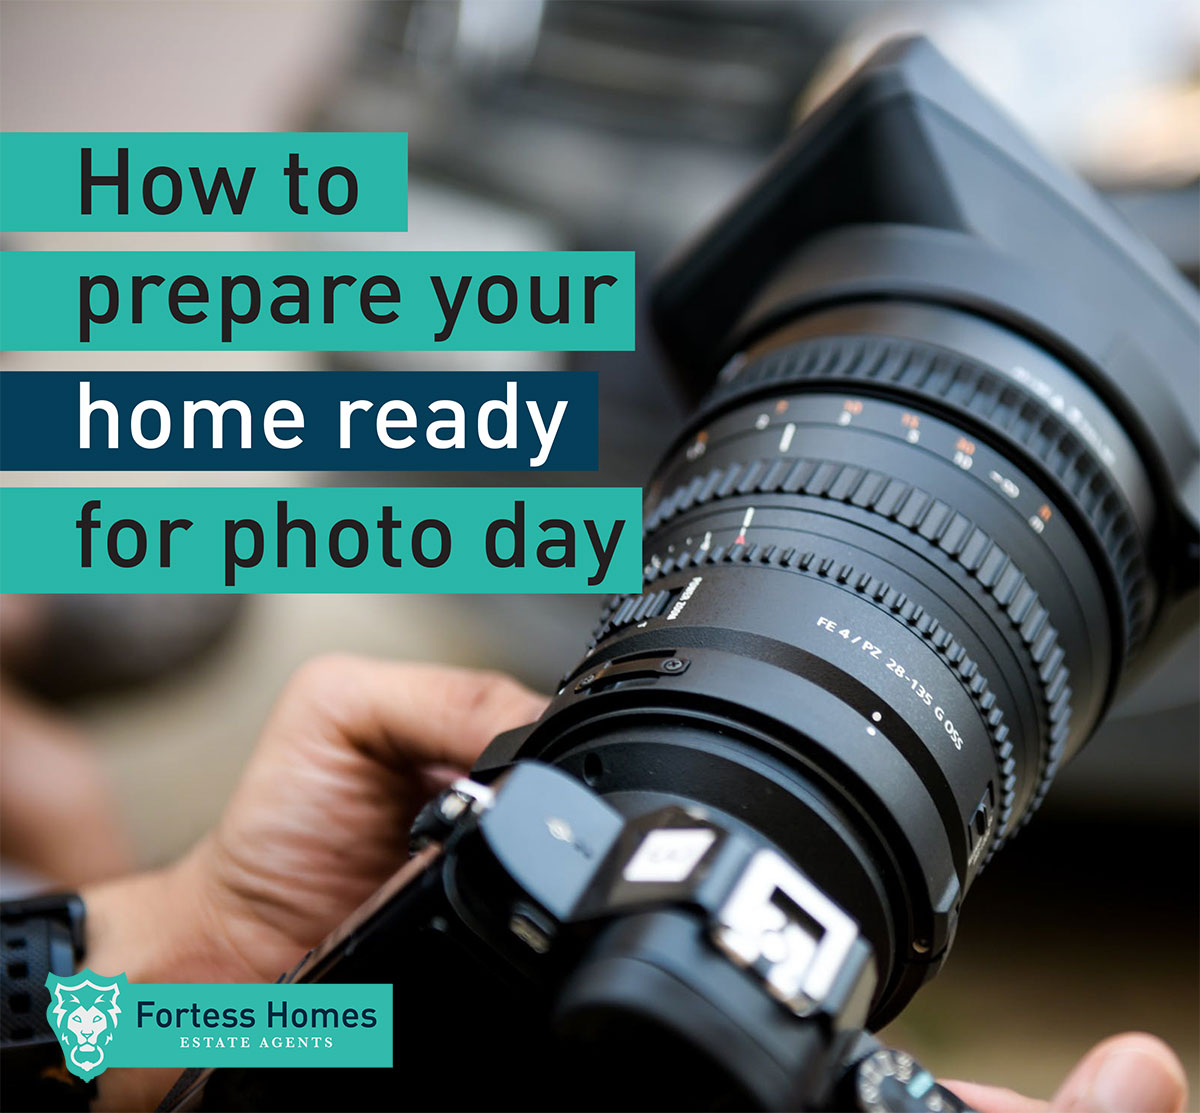 How to prepare your home ready for photo day